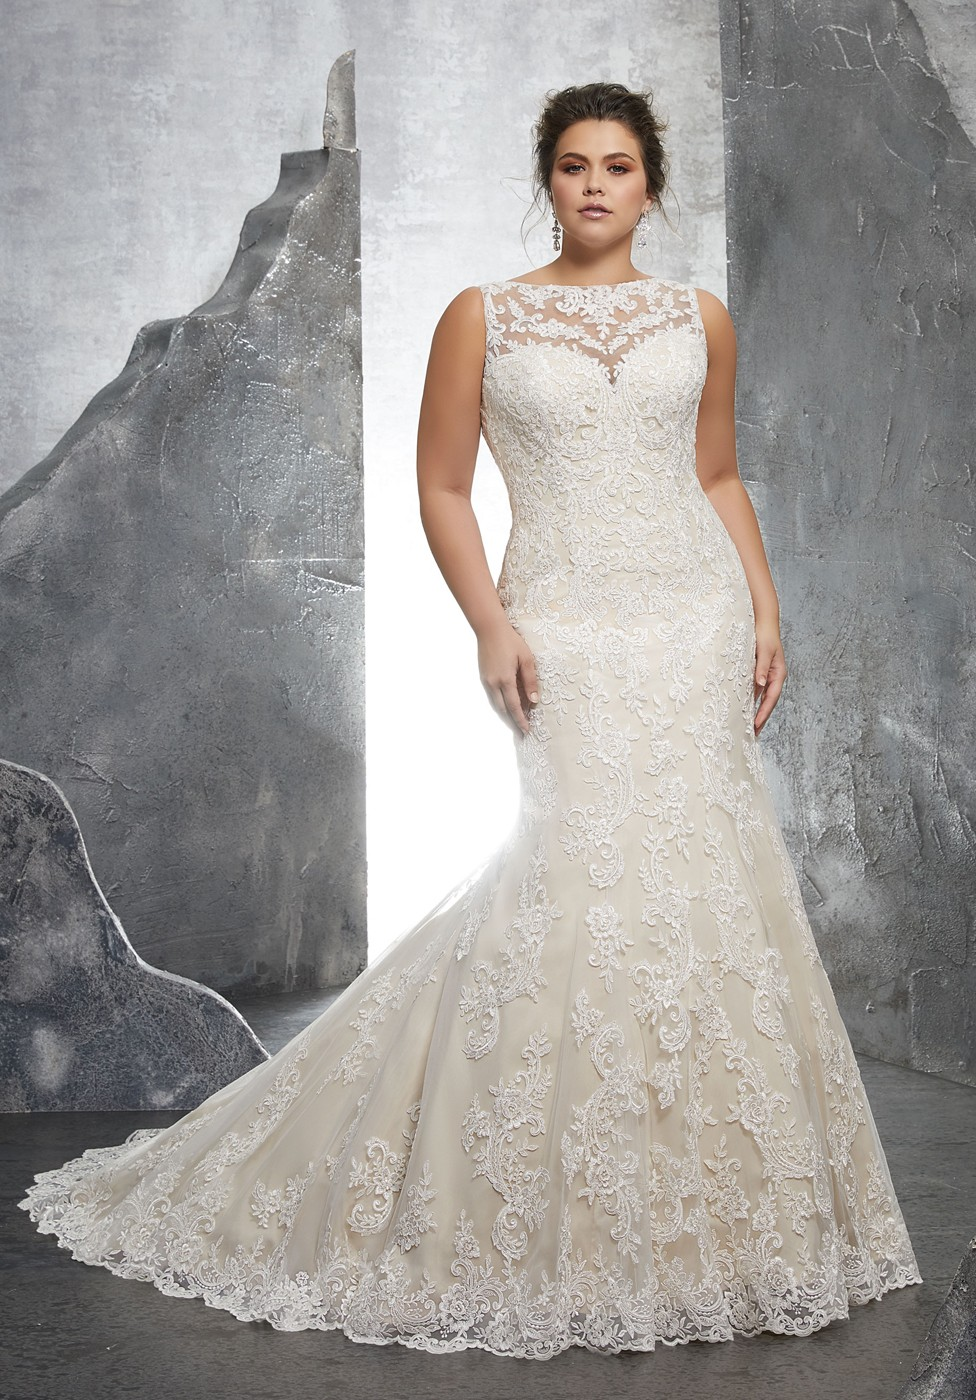 7081e7add551 Mori Lee Keri Style 3233 Dress - MadameBridal.com